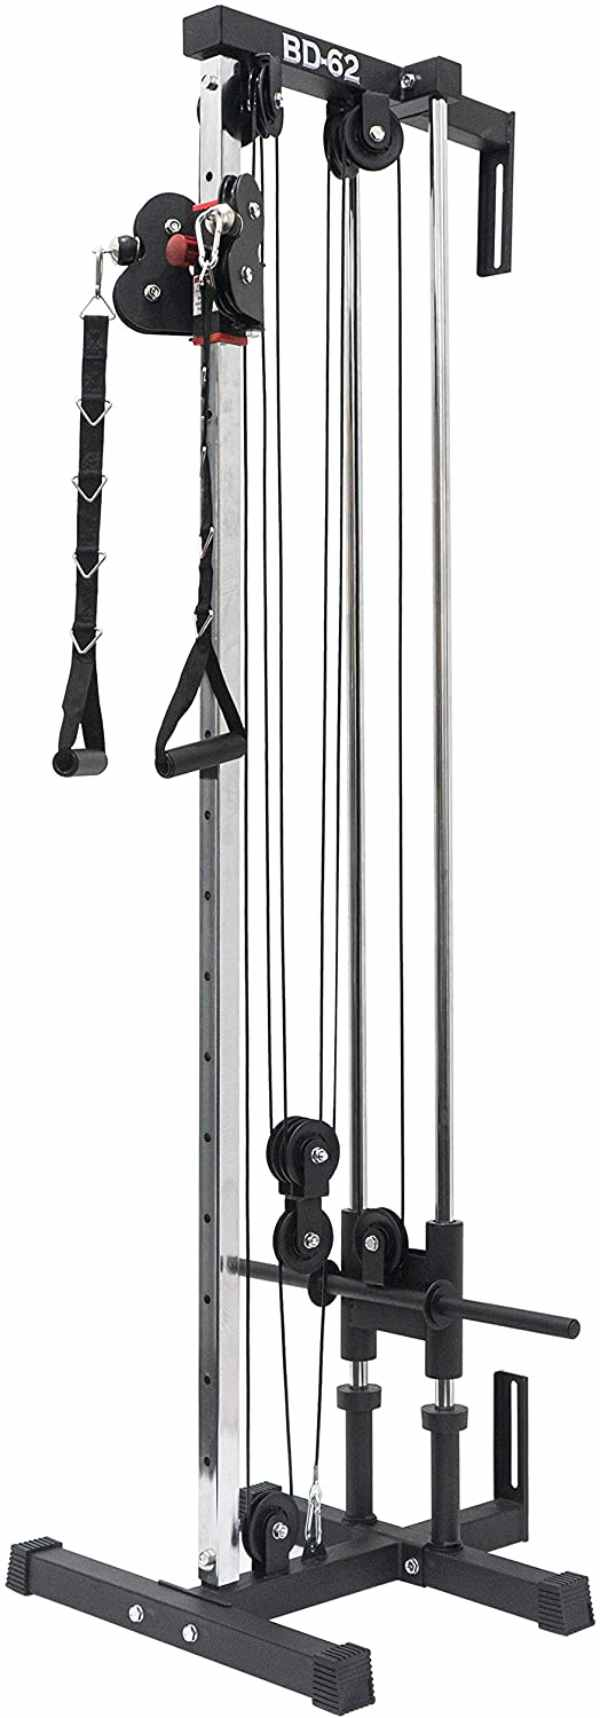 Valor Fitness BD-62 Wall Mount Cable Station